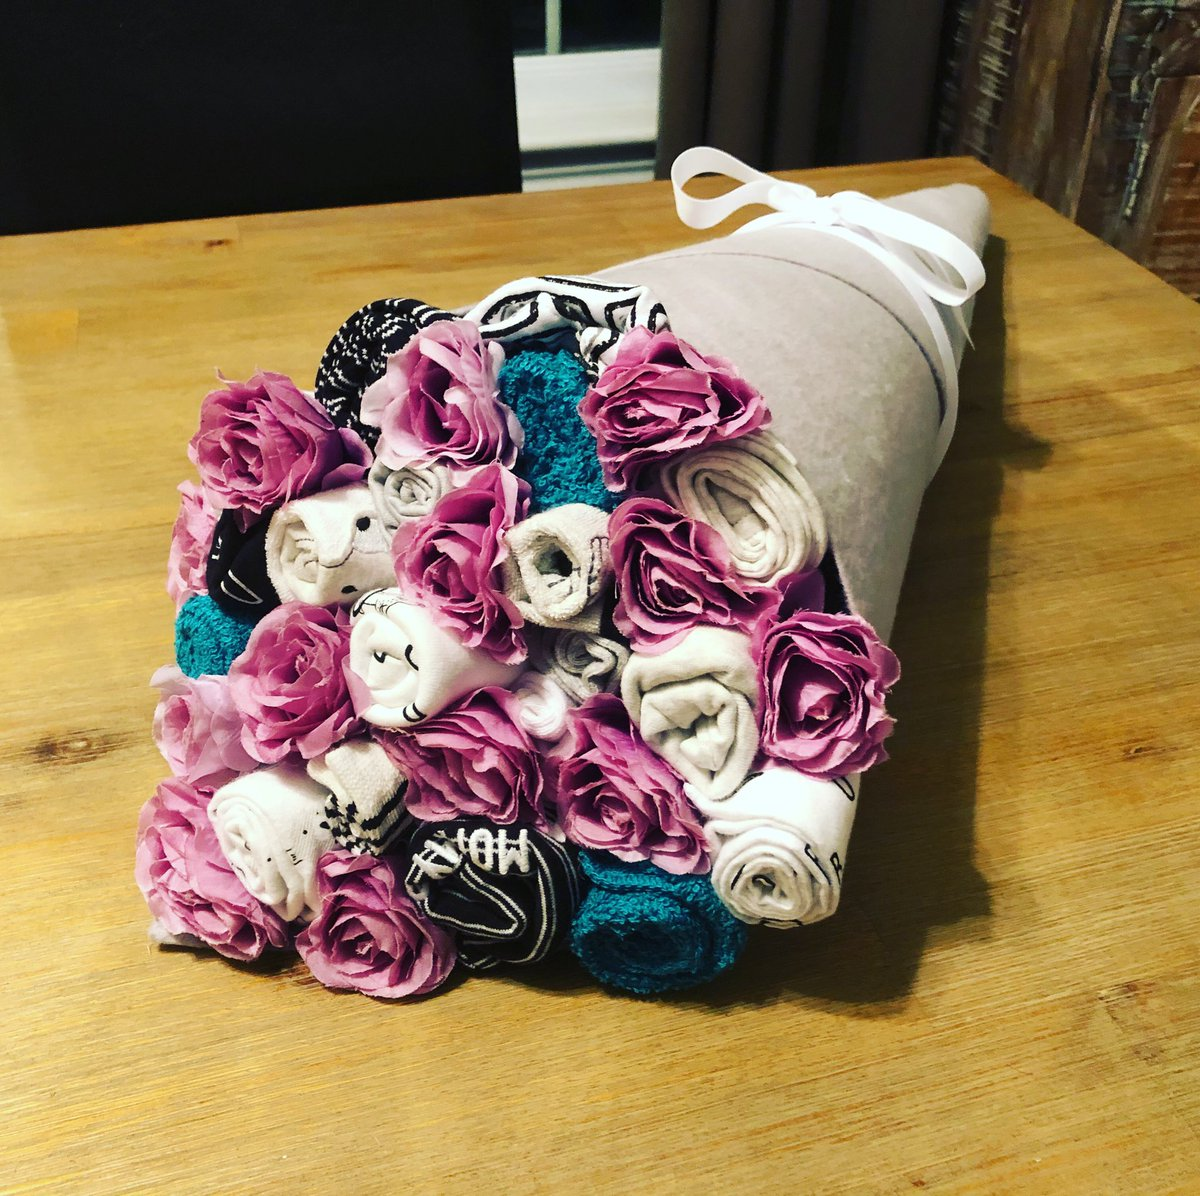 Kim Hogeveen On Twitter The Latest Baby Bouquet Done And Delivered Made Gender Neutral In Black And White Purple Flowers For Fun Babybouquet Genderneutral Babyshower Babyclothes Diy Https T Co Uuinhx5iyu